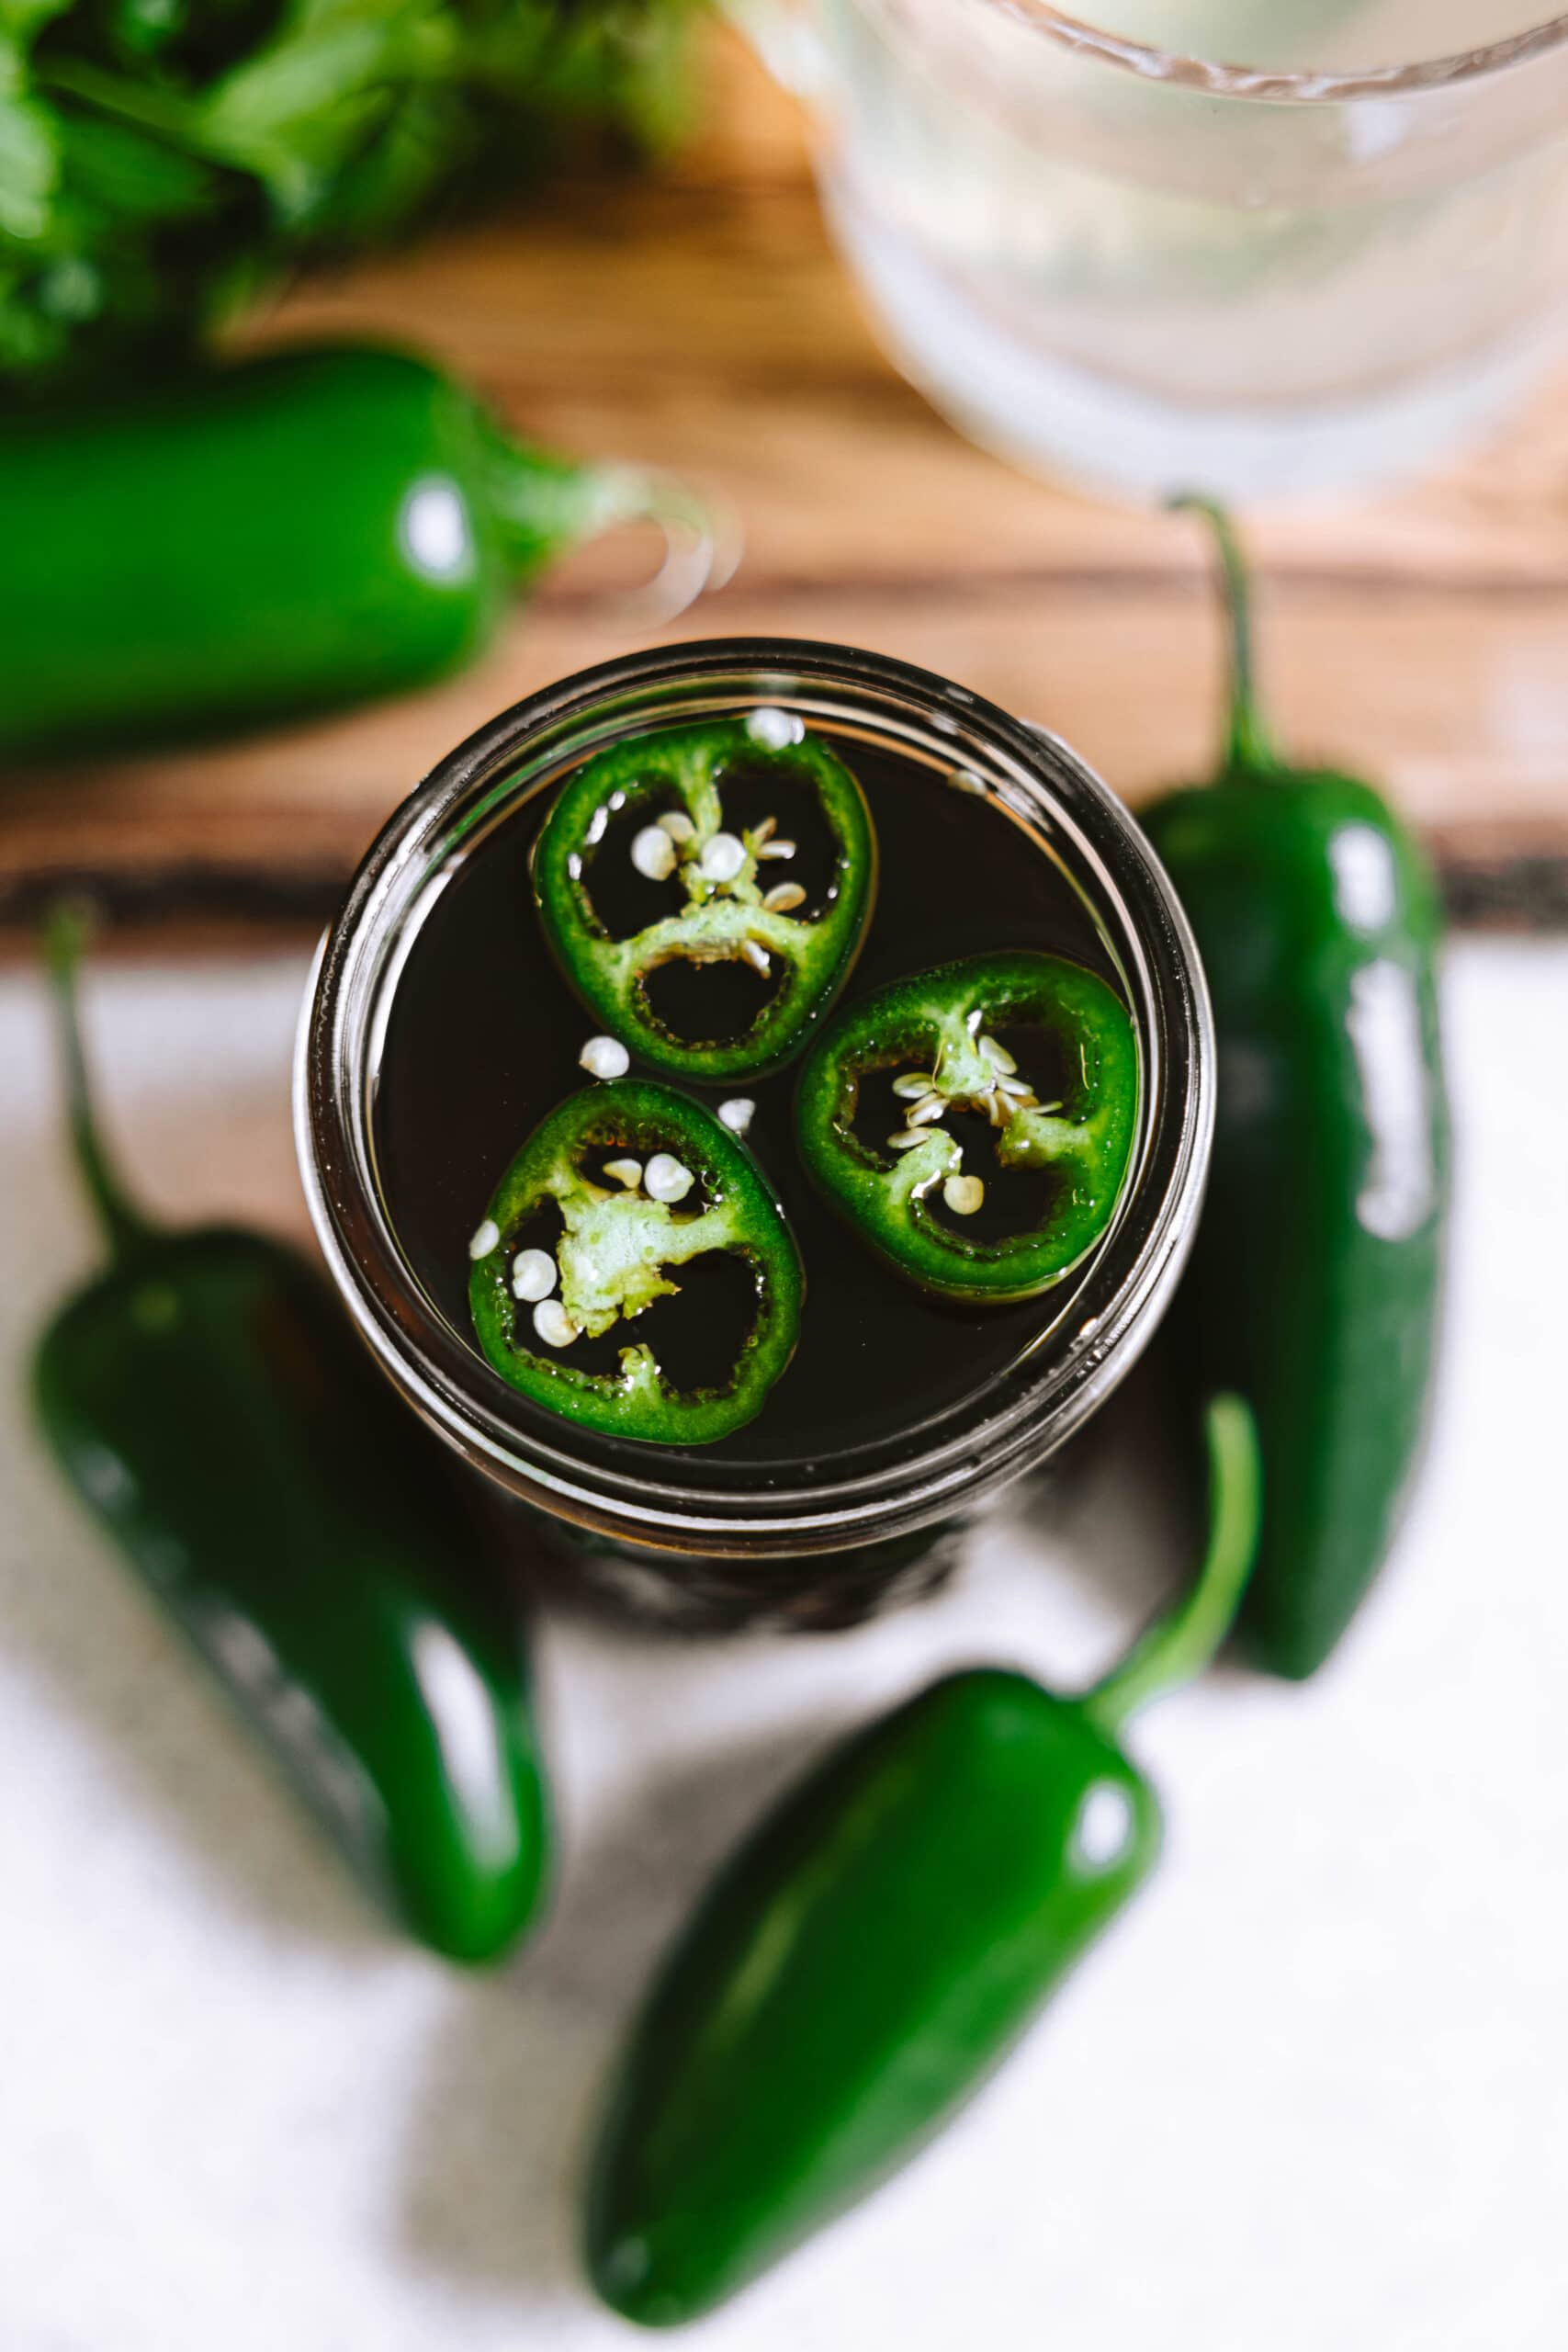 The syrup around 4 jalapeño peppers